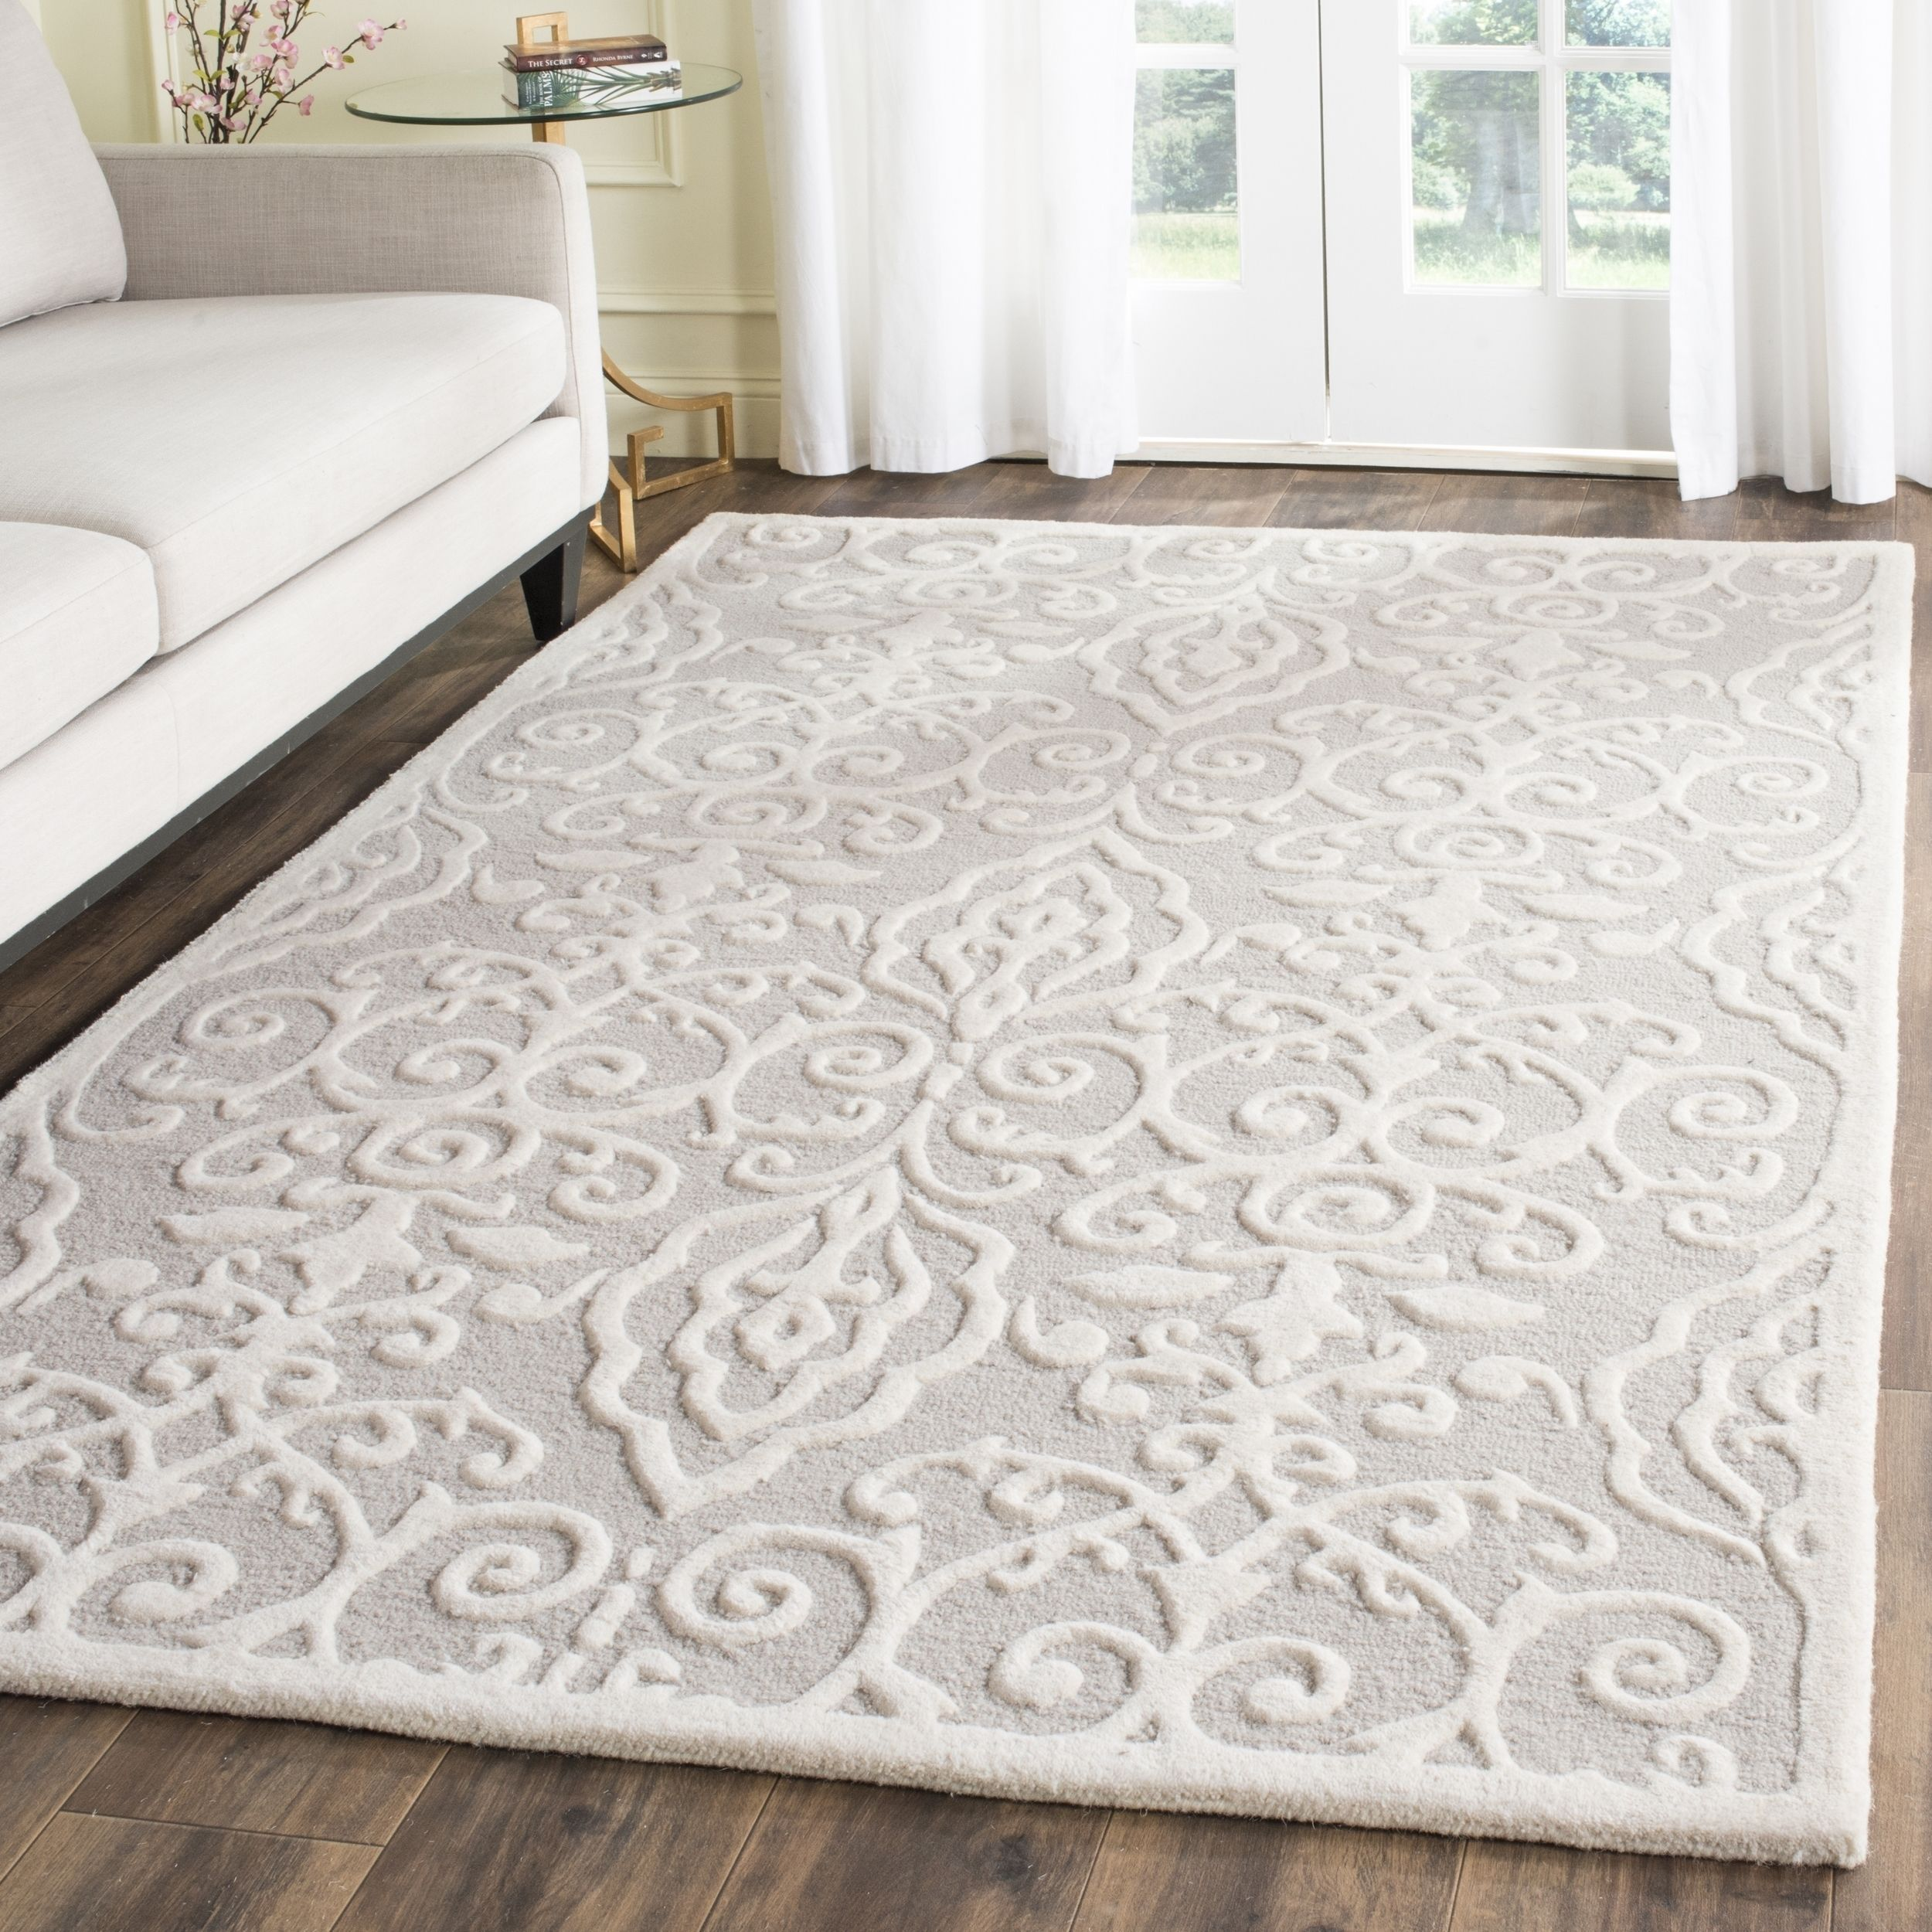 Overstock Com Online Shopping Bedding Furniture Electronics Jewelry Clothing More Cool Rugs Rugs Colorful Rugs